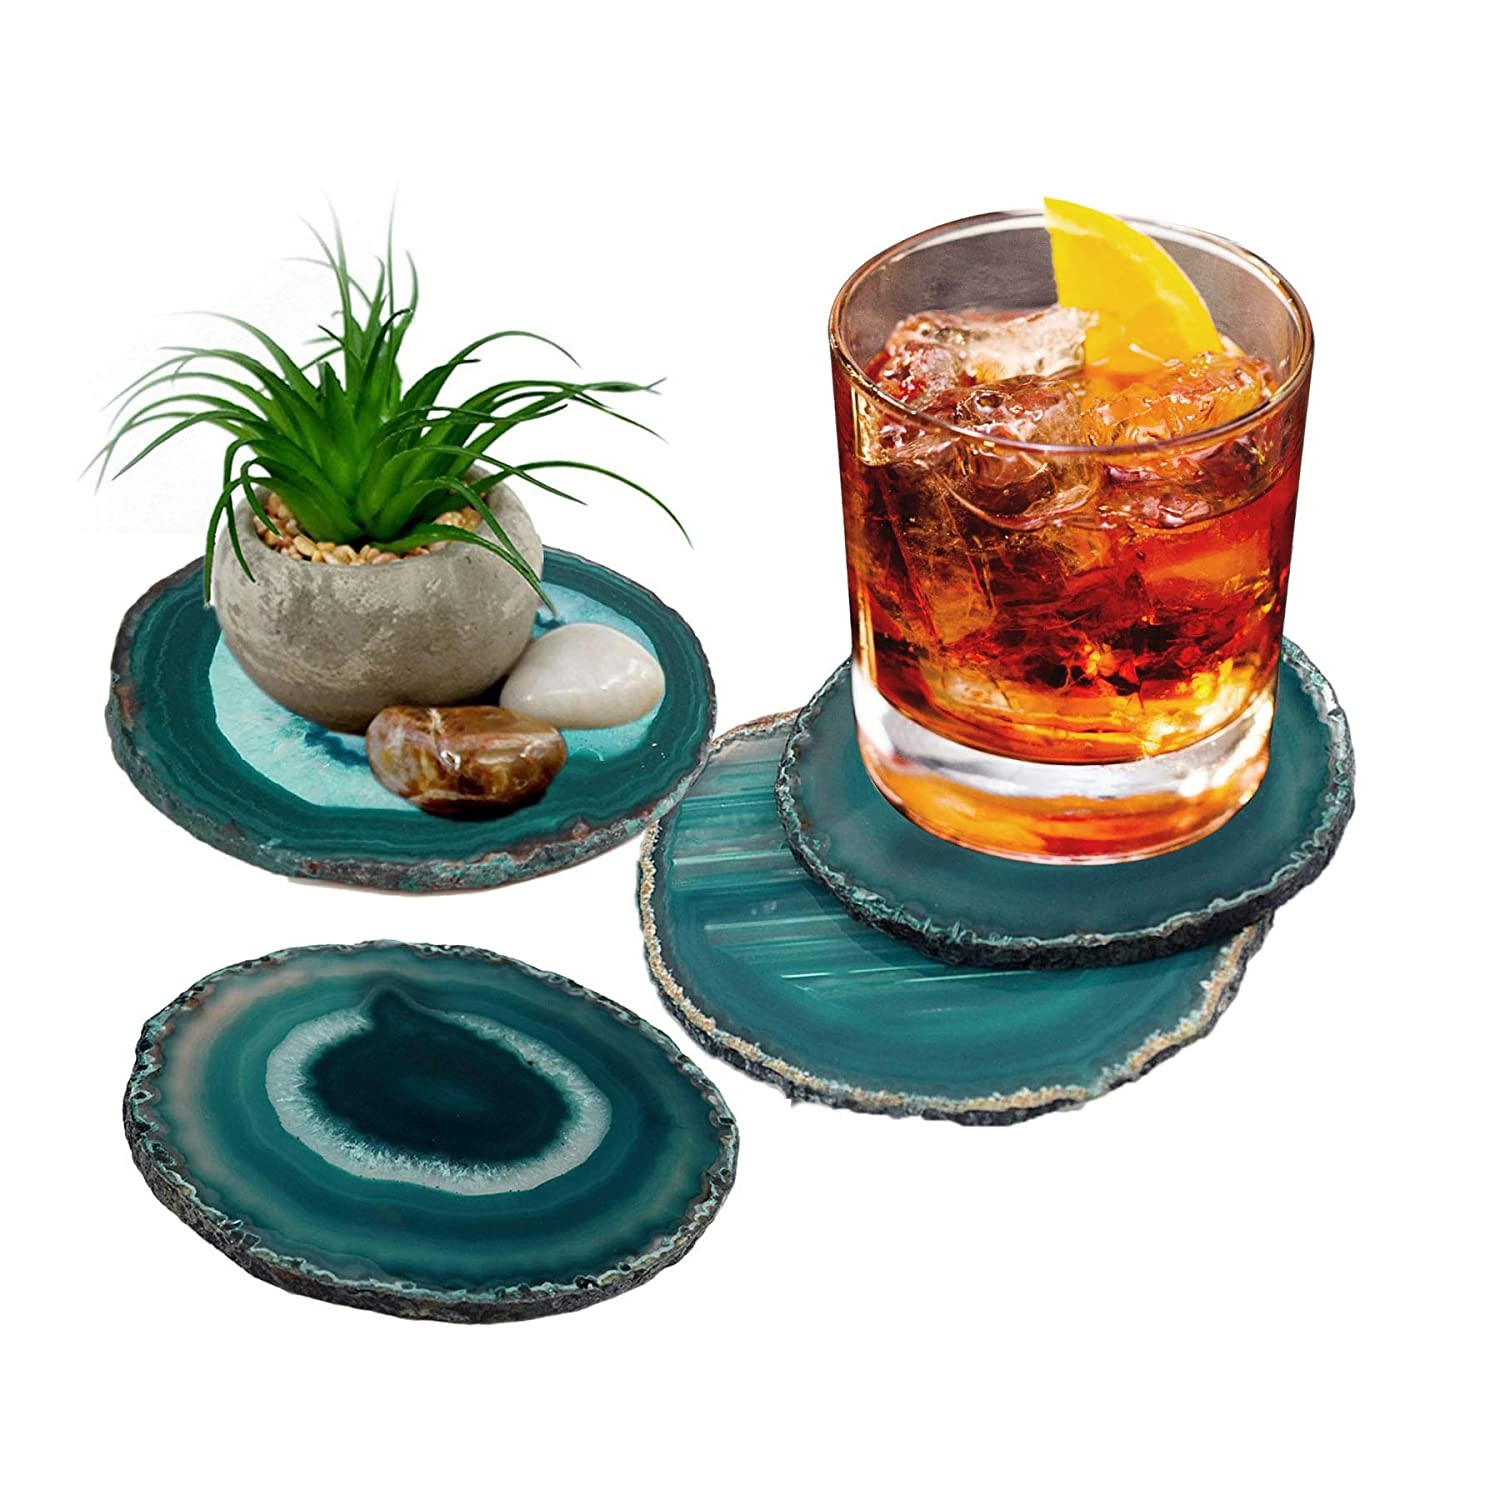 "AMOYSTONE Agate Coaster Teal 3-3.5"" Dyed Sliced Agate Drinks Cup Mat Set of 4 Small with Rubber Bumpers"